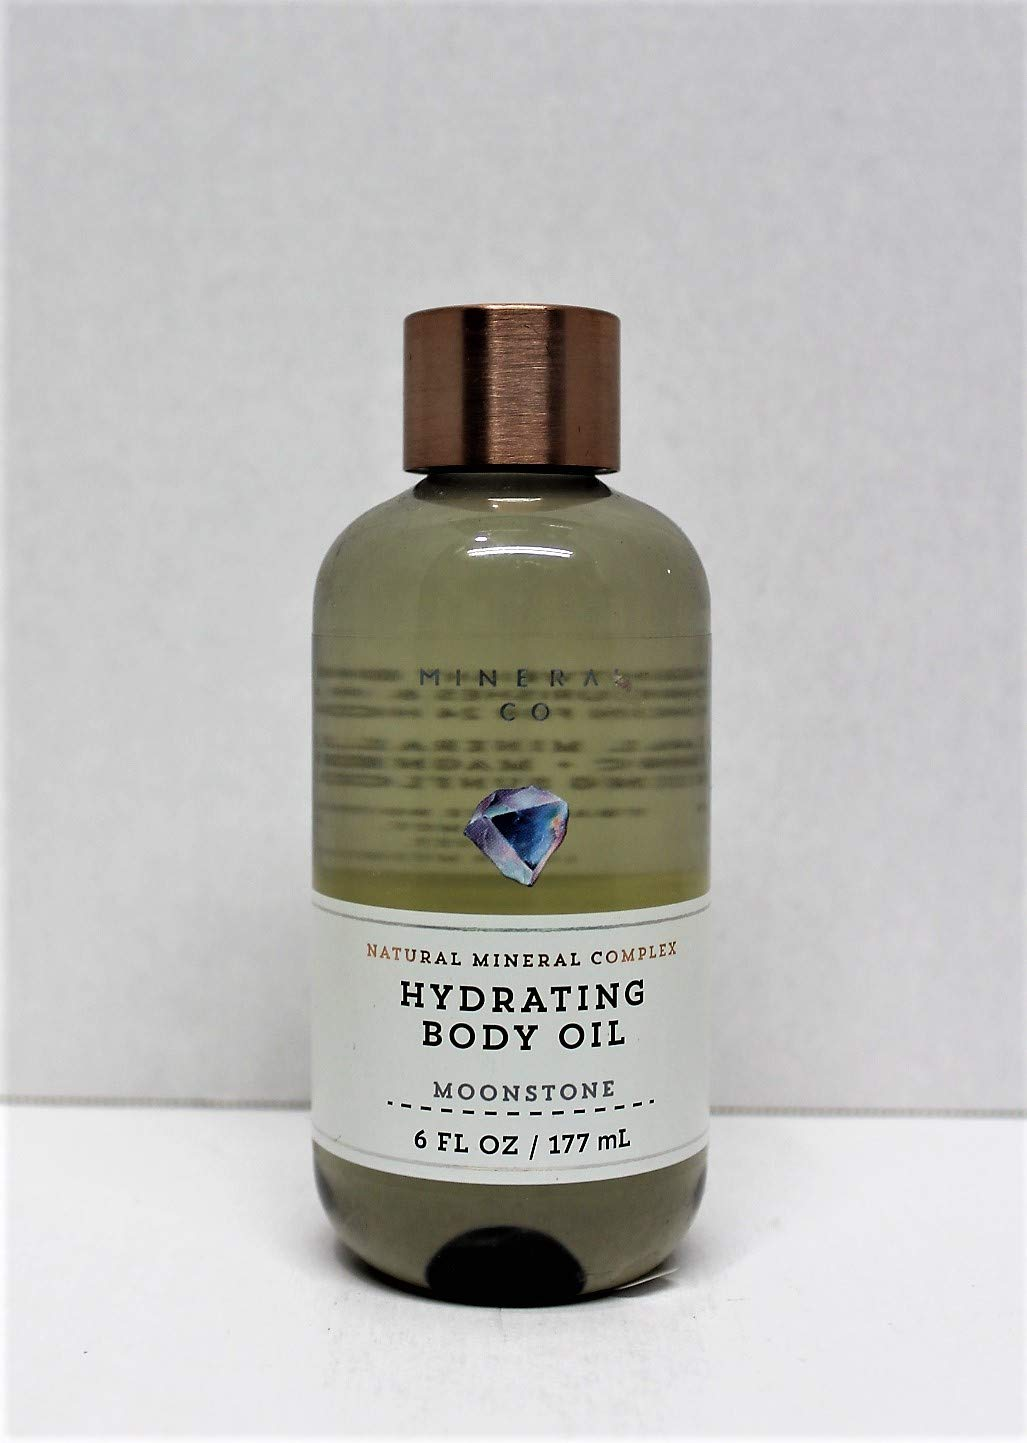 Bath and Body works Moonstone Hydrating Body Oil 6 FL OZ Bath & Body Works